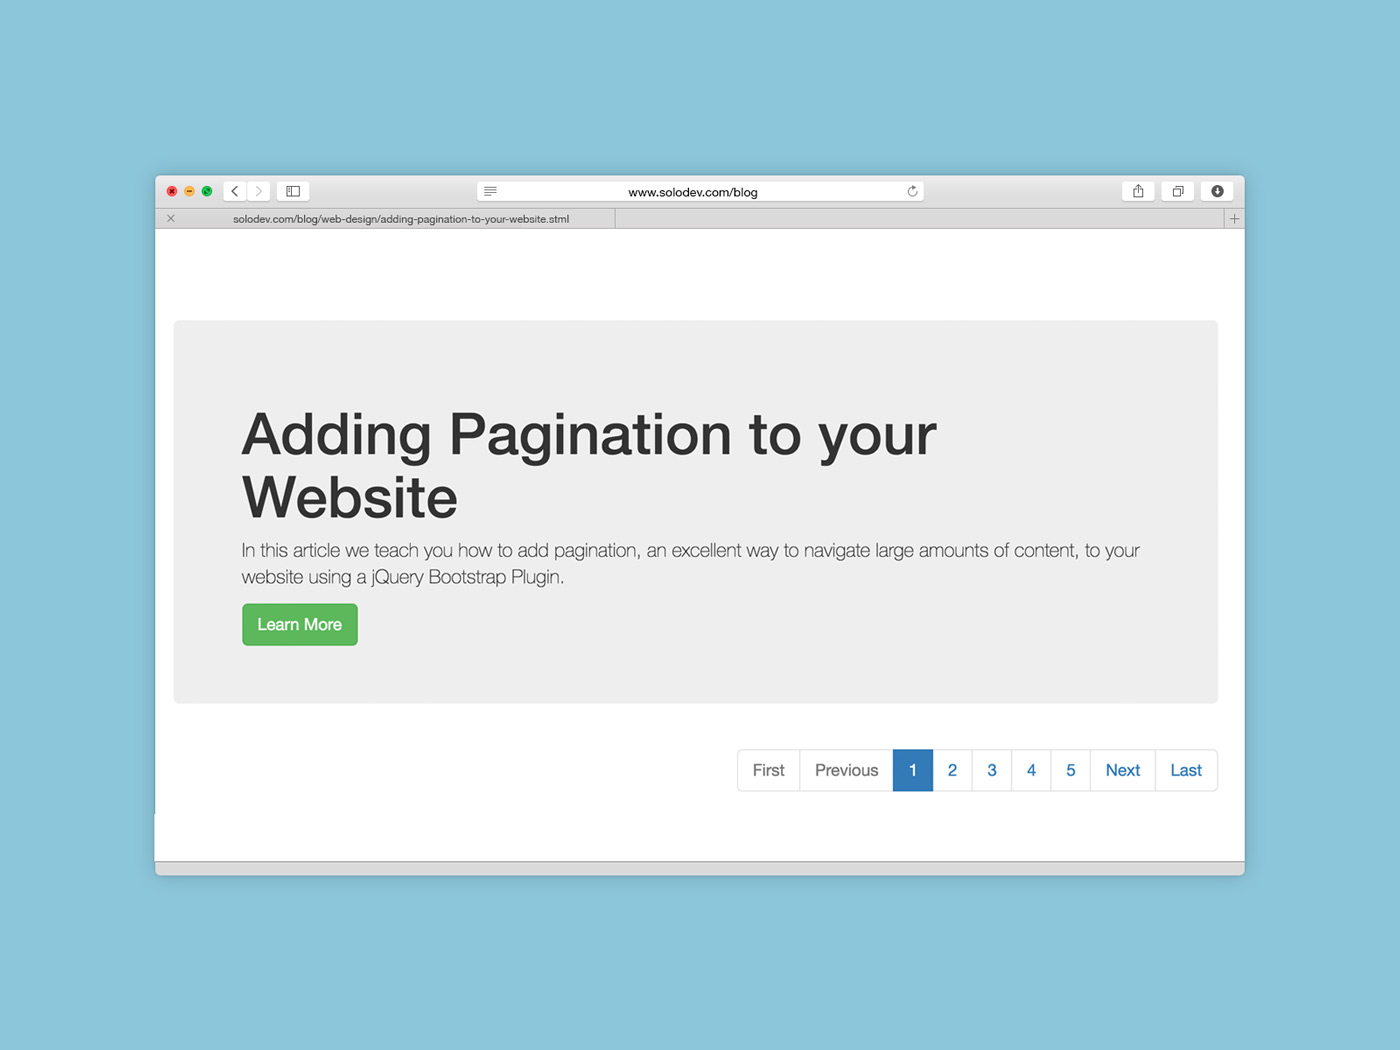 Adding Pagination To Your Website Solodev